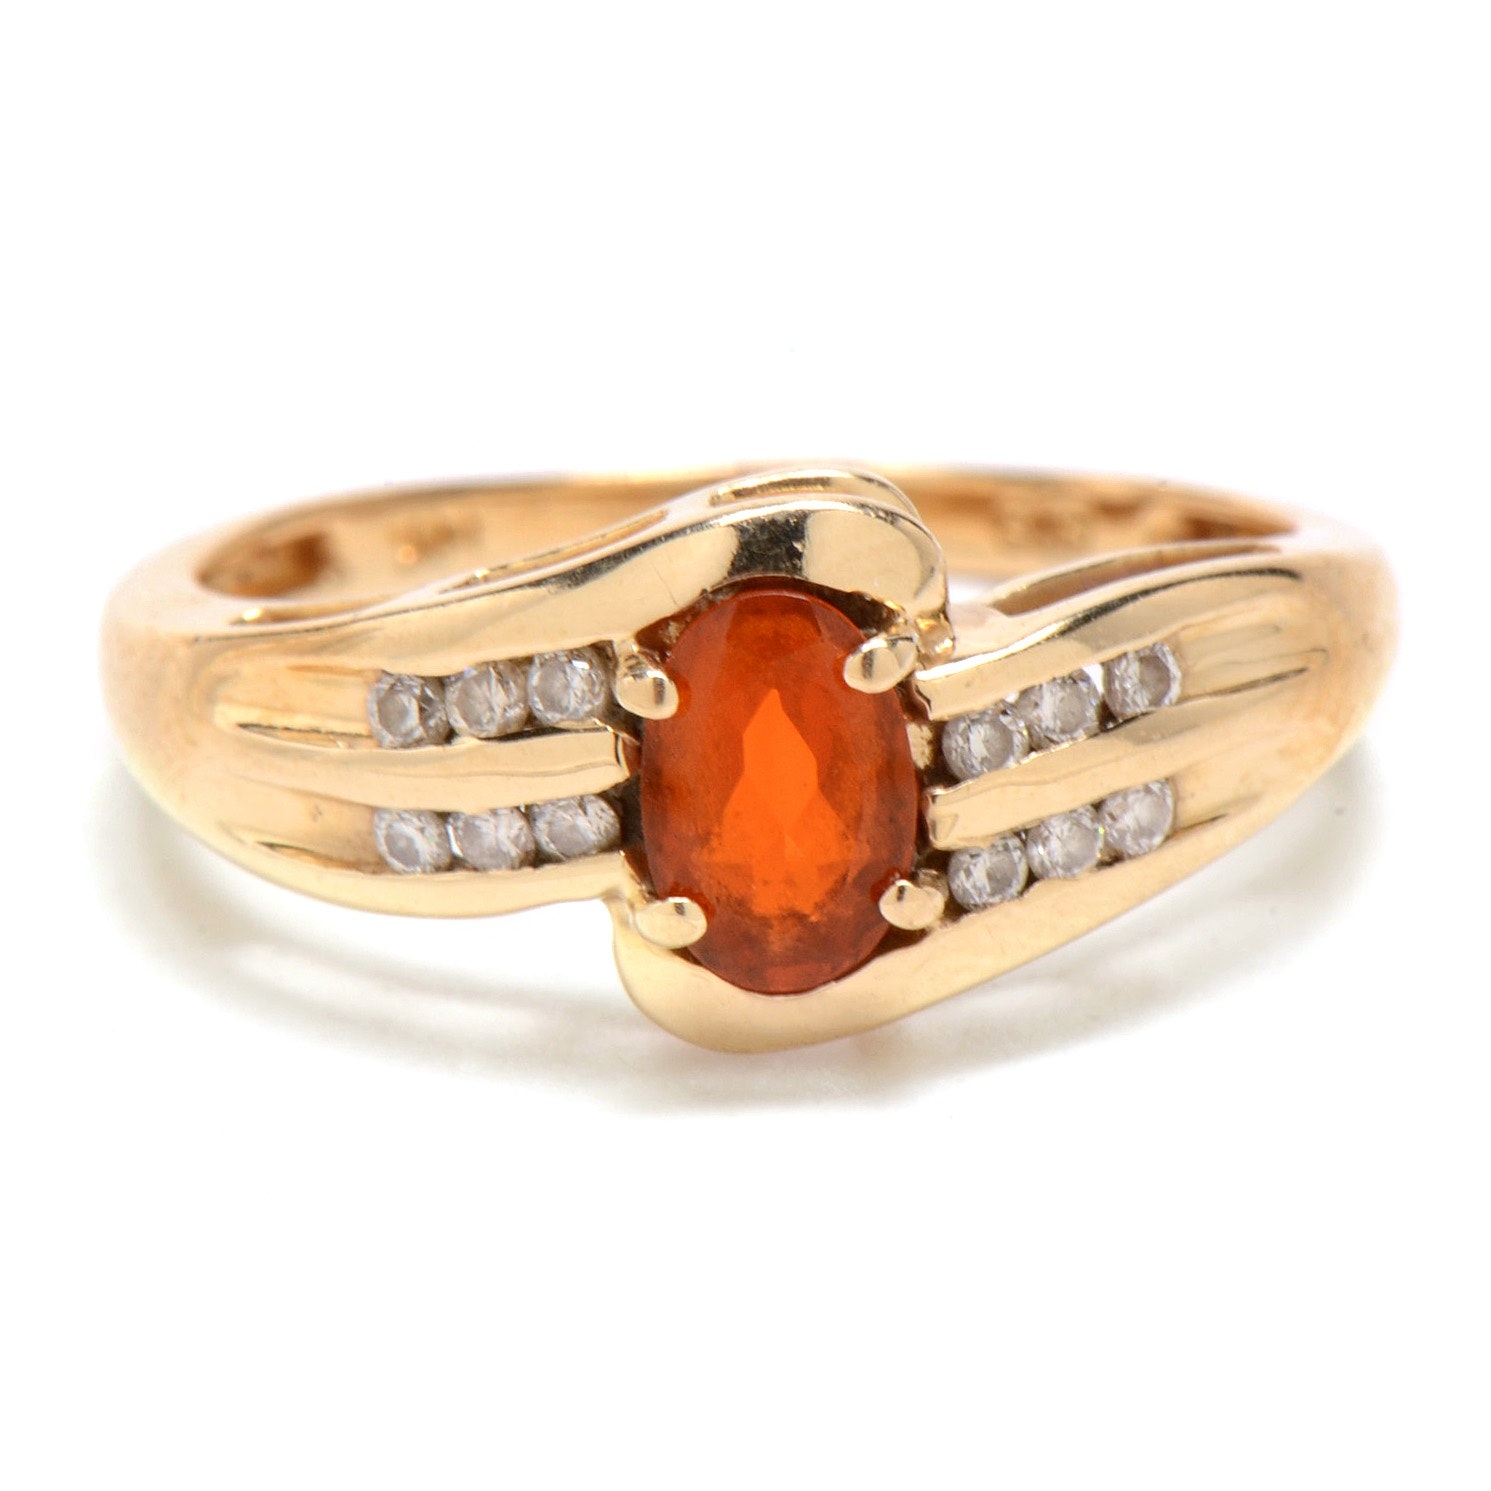 14K Yellow Gold Diamond and Fire Opal Ring